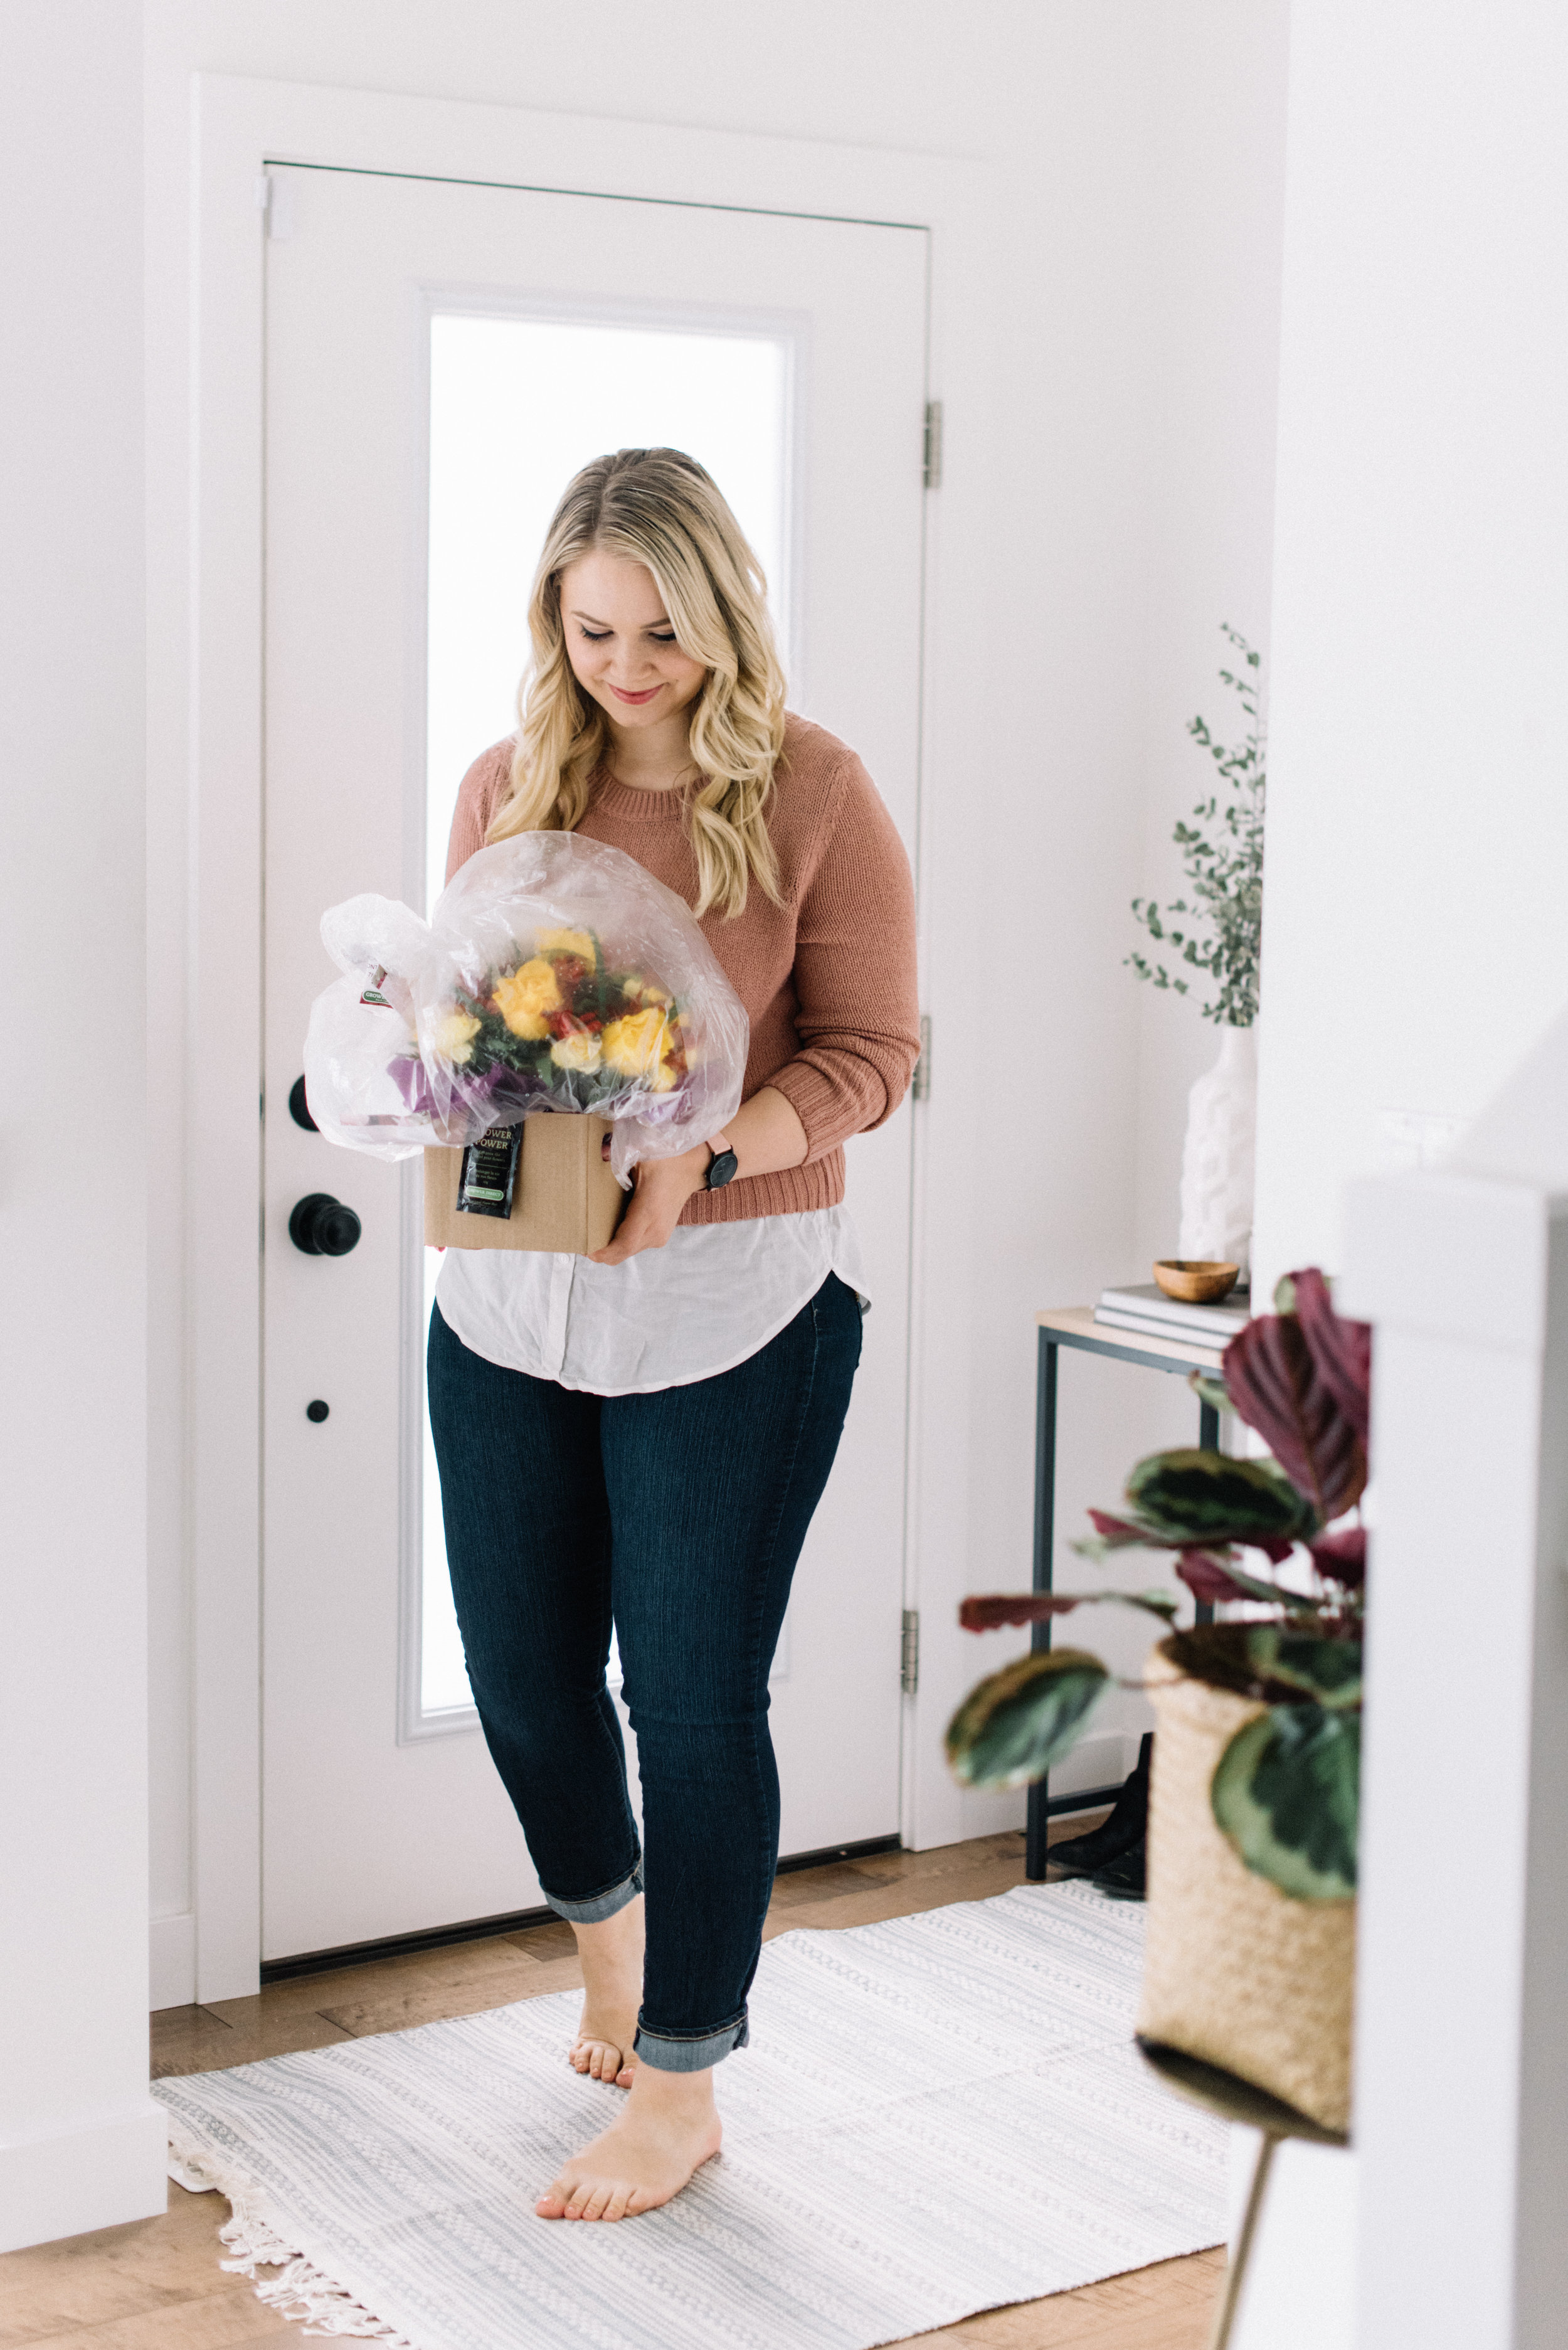 affordable online flowers